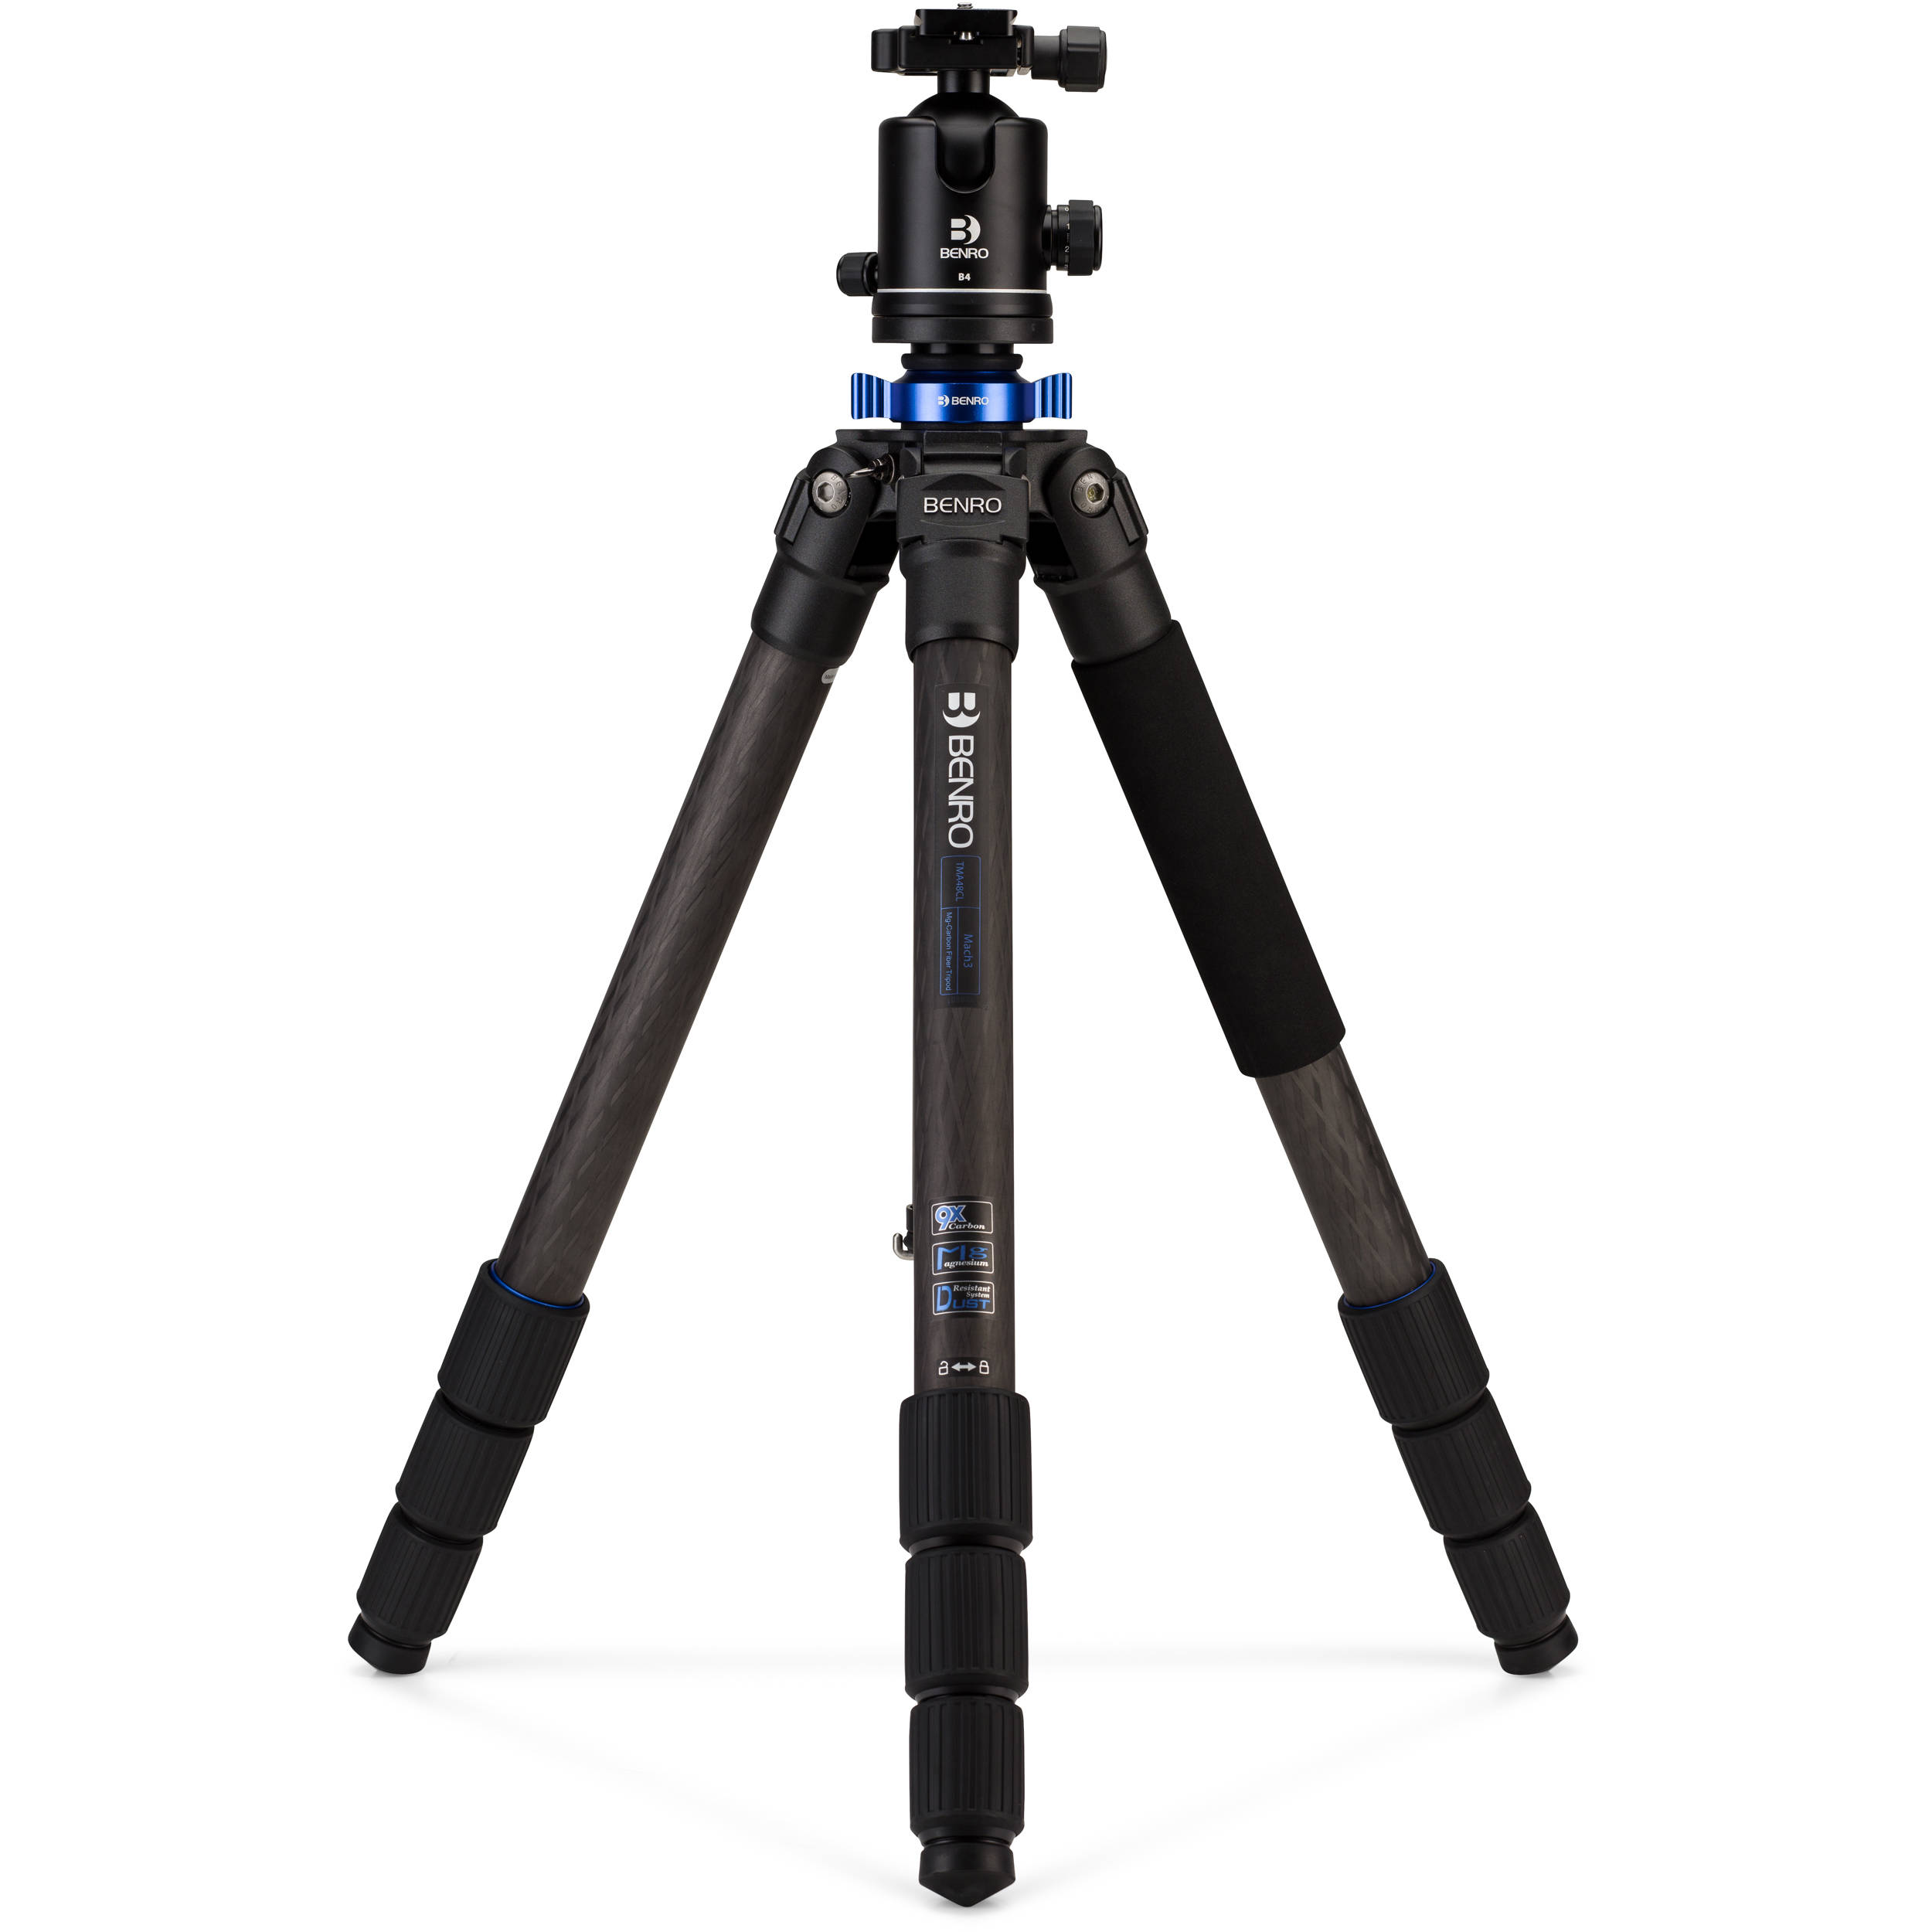 Benro TMA48CLB4 Series 4 Mach3 Carbon Fiber Tripod with B4 Ball Head